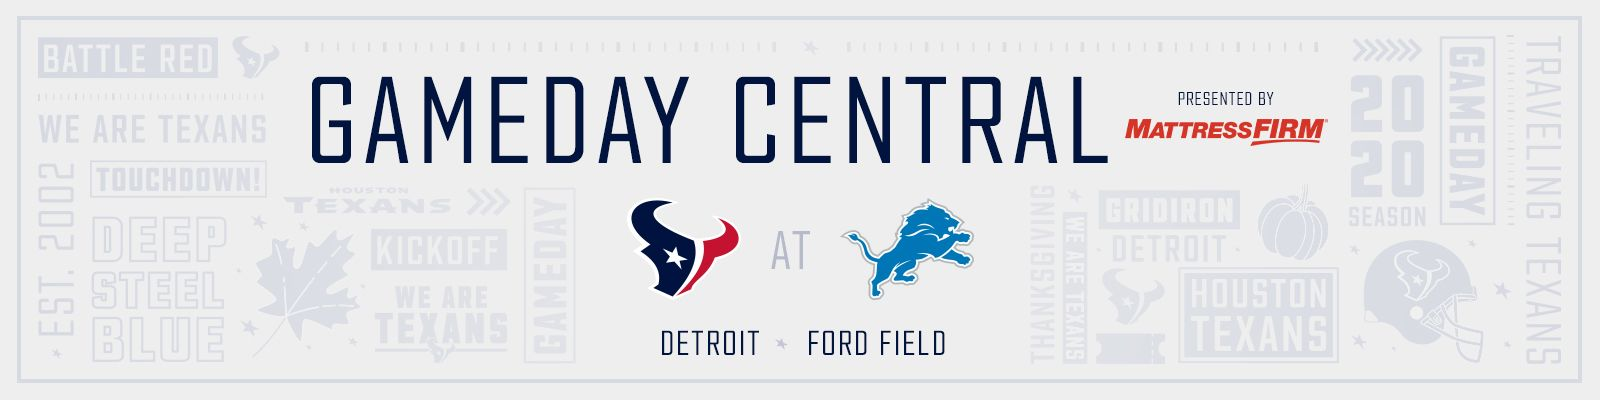 Gameday Central presented by Mattress Firm